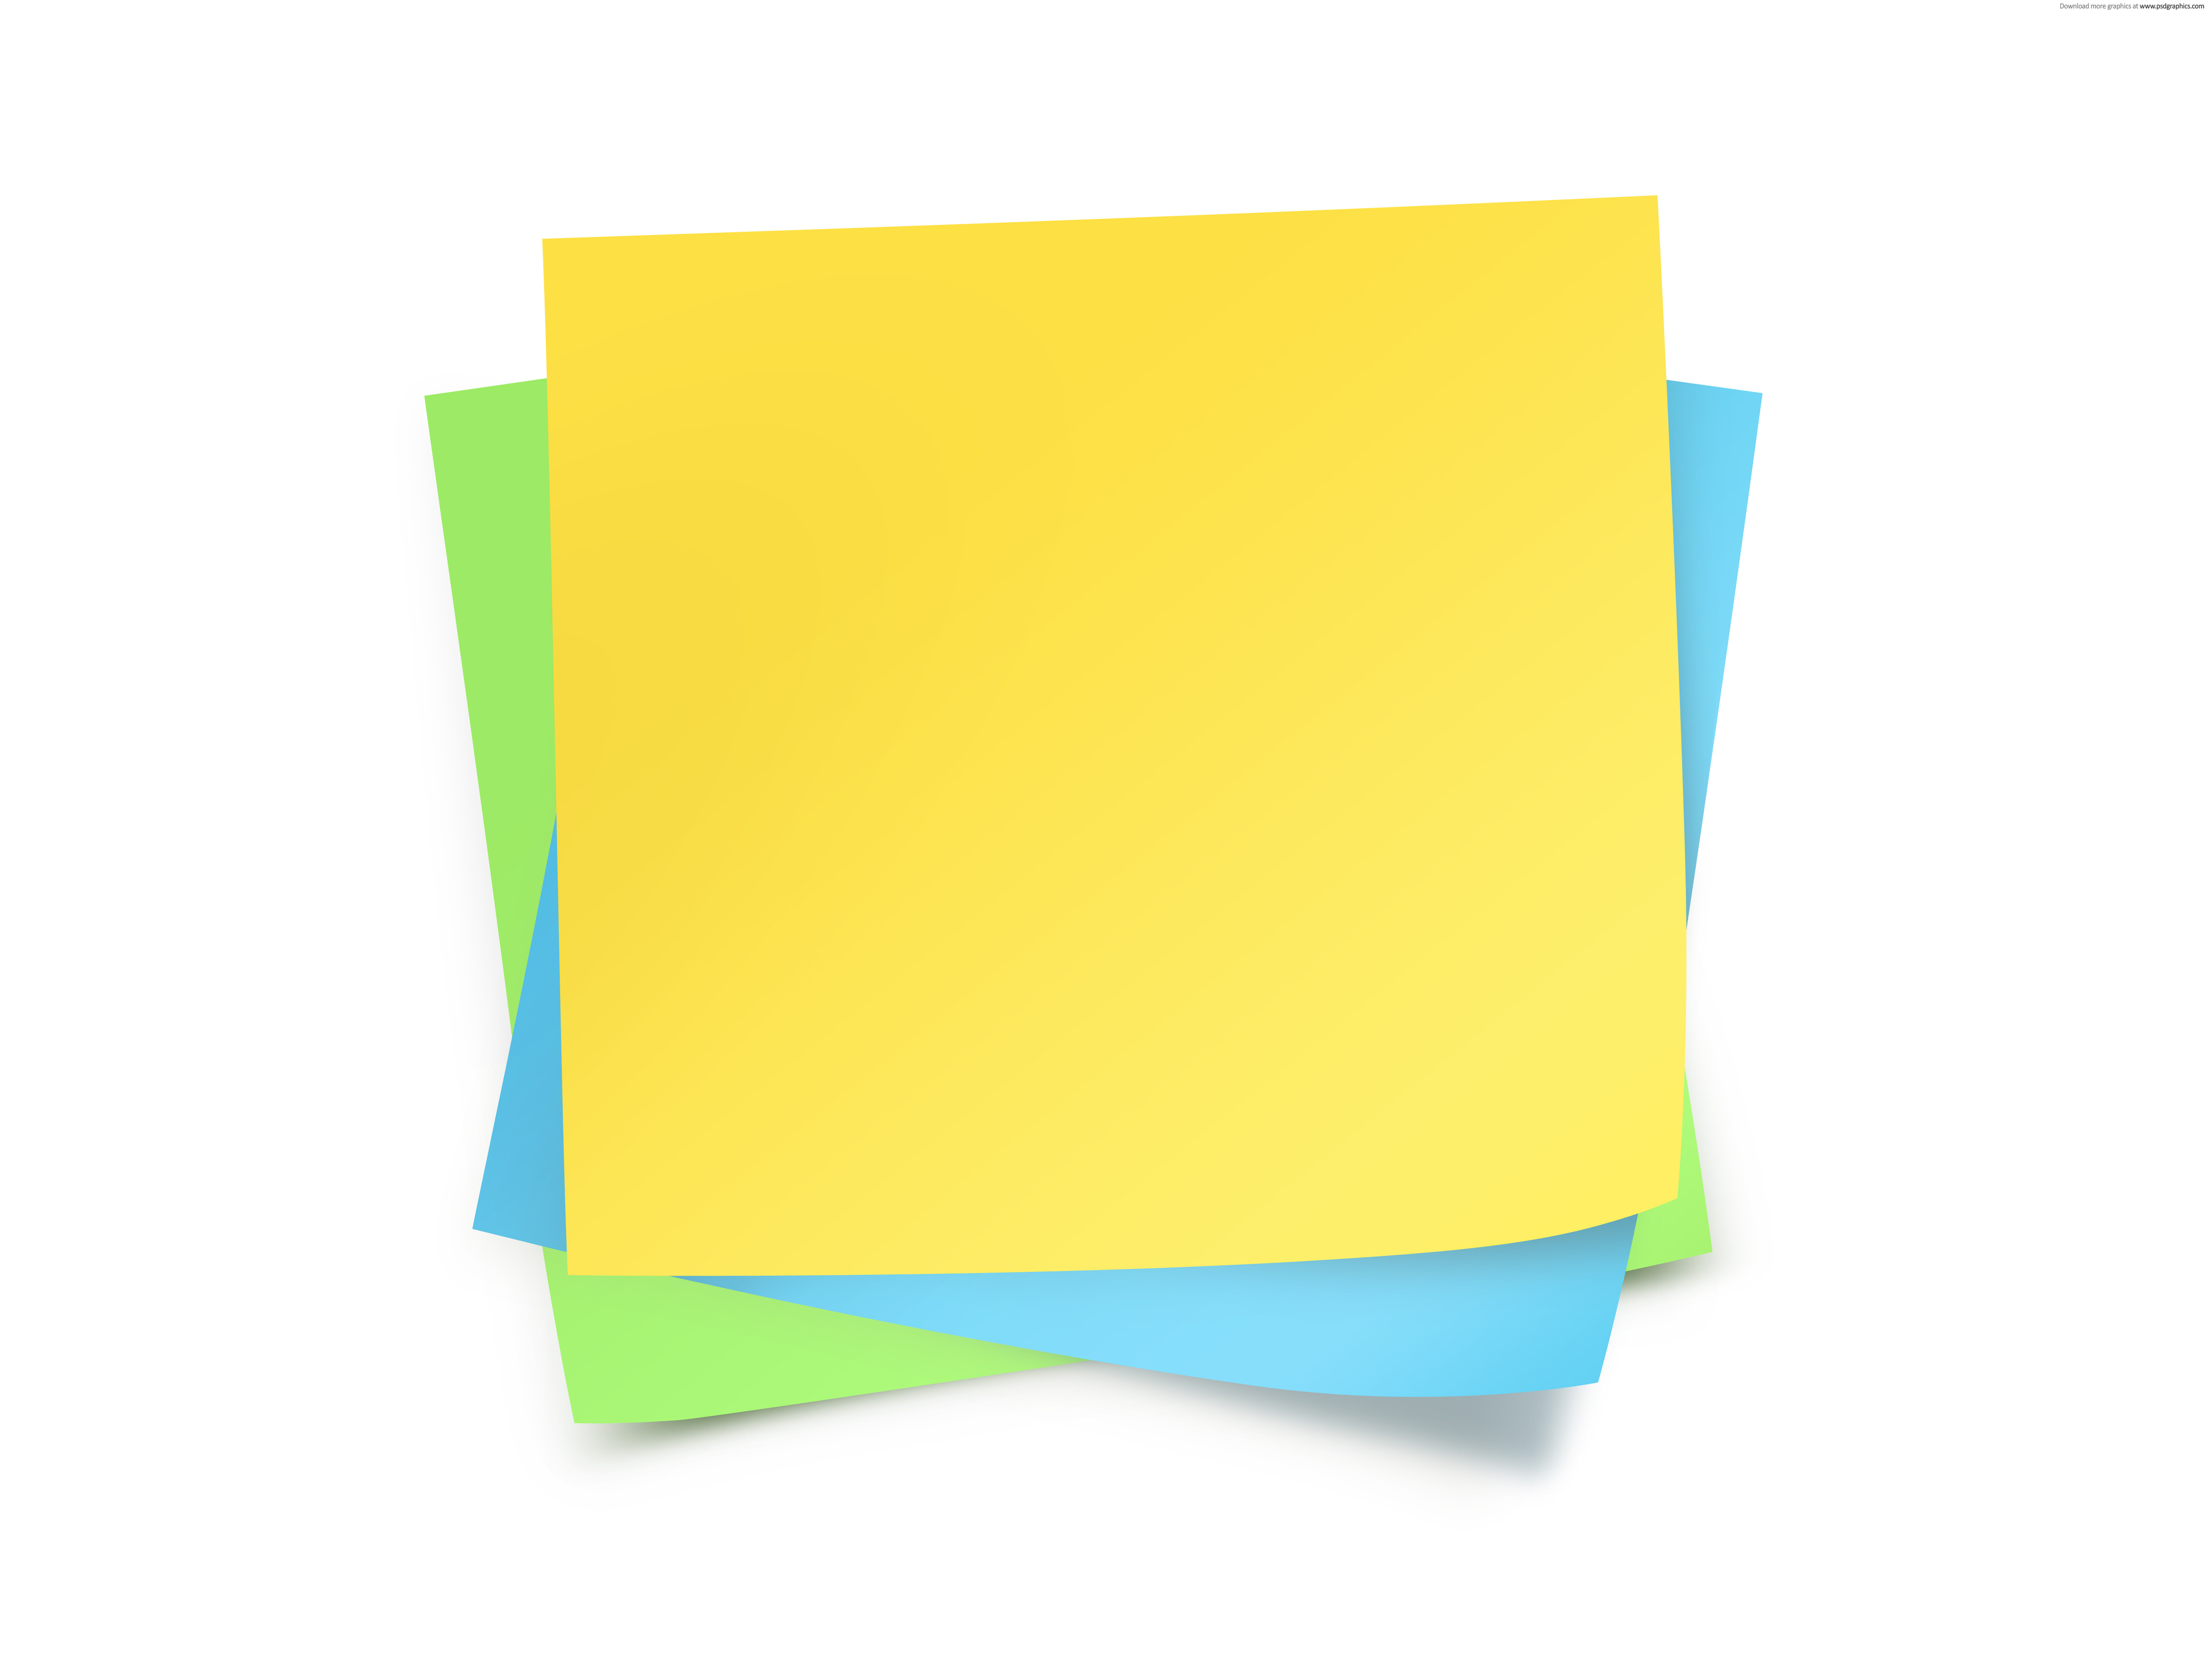 4750x3563 Post It Notes Images Clipart Free To Use Clip Art Resource